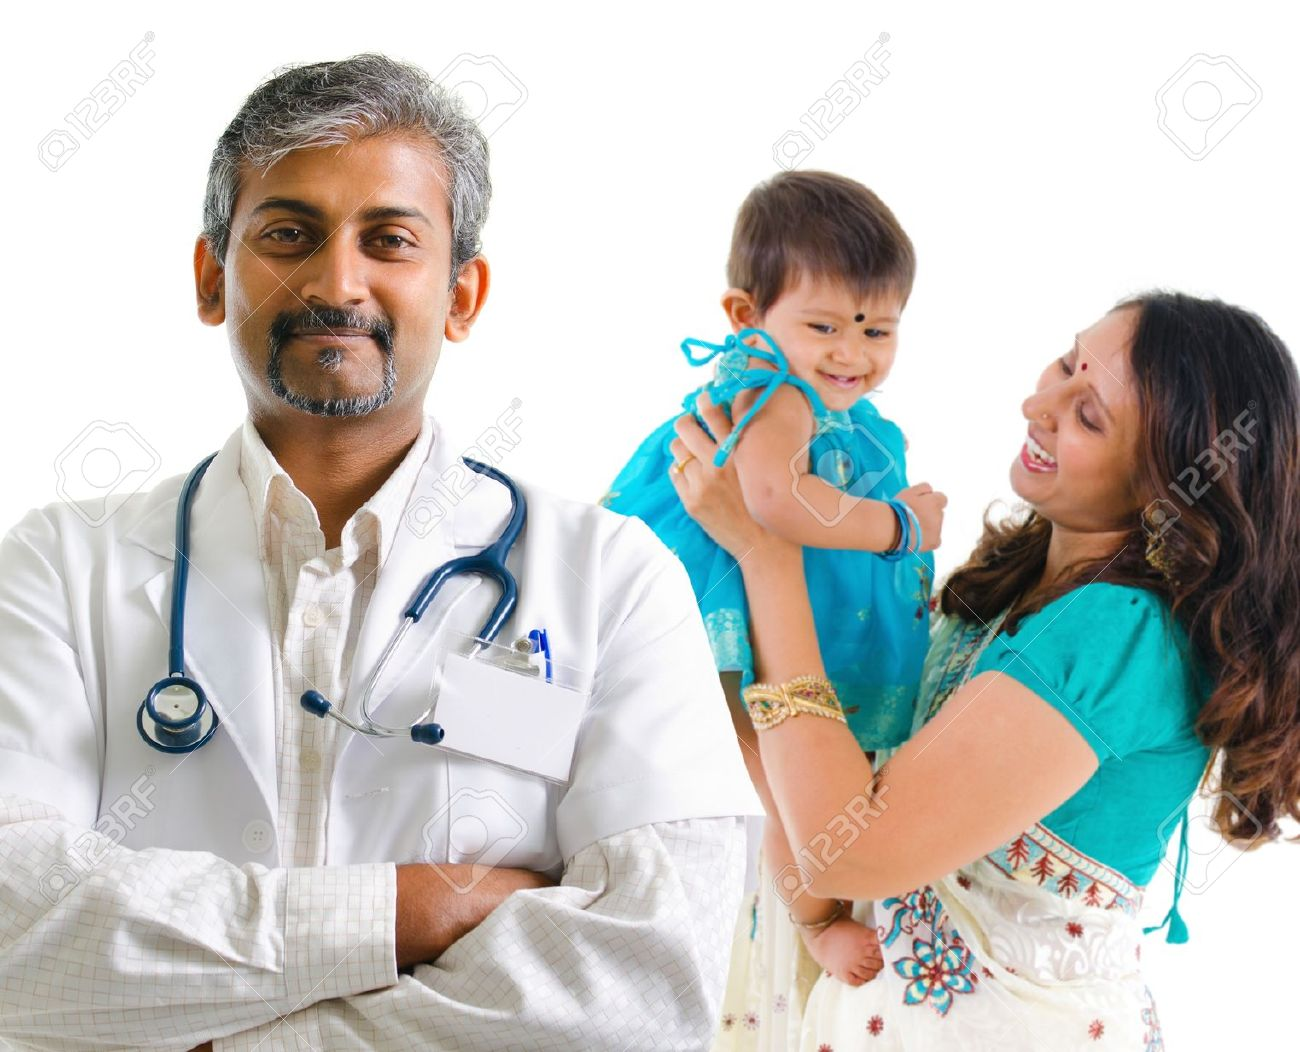 smiling indian medical doctor and patient family health care